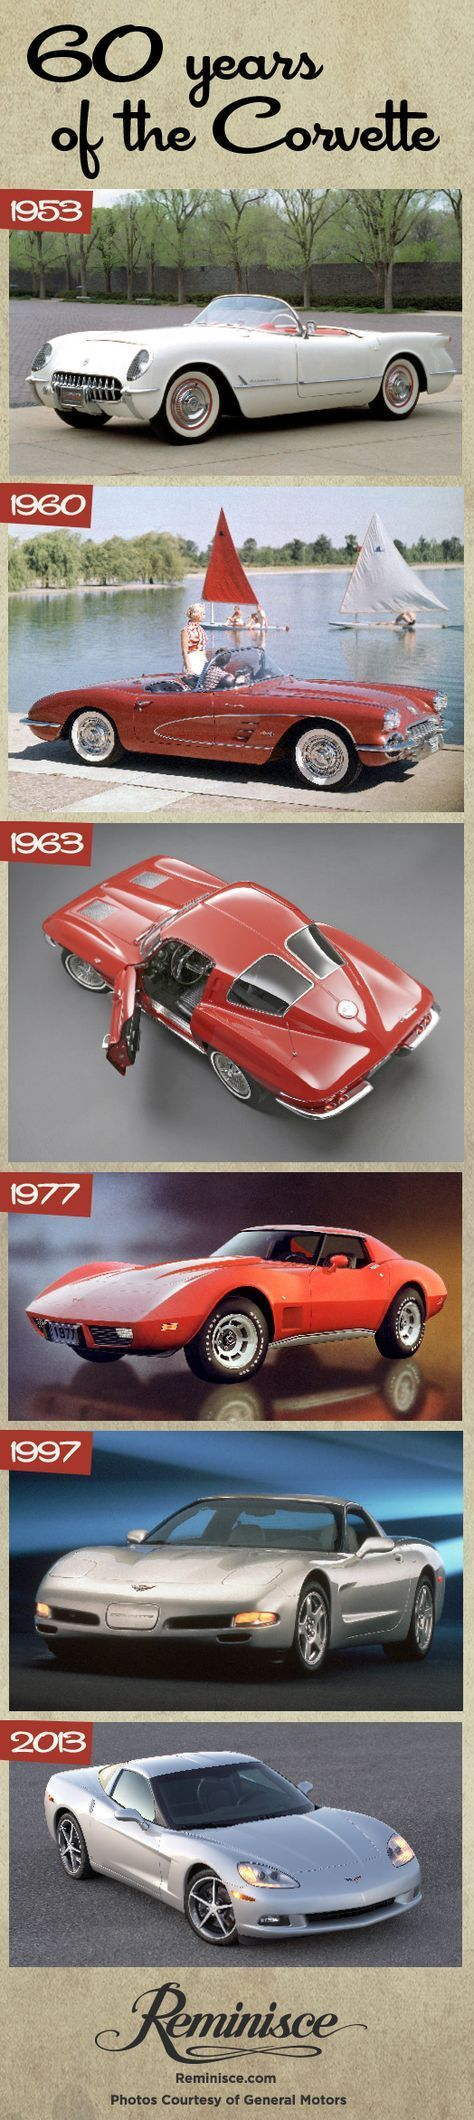 The corvette turns 60 this year see the evolution of the classic american sports car